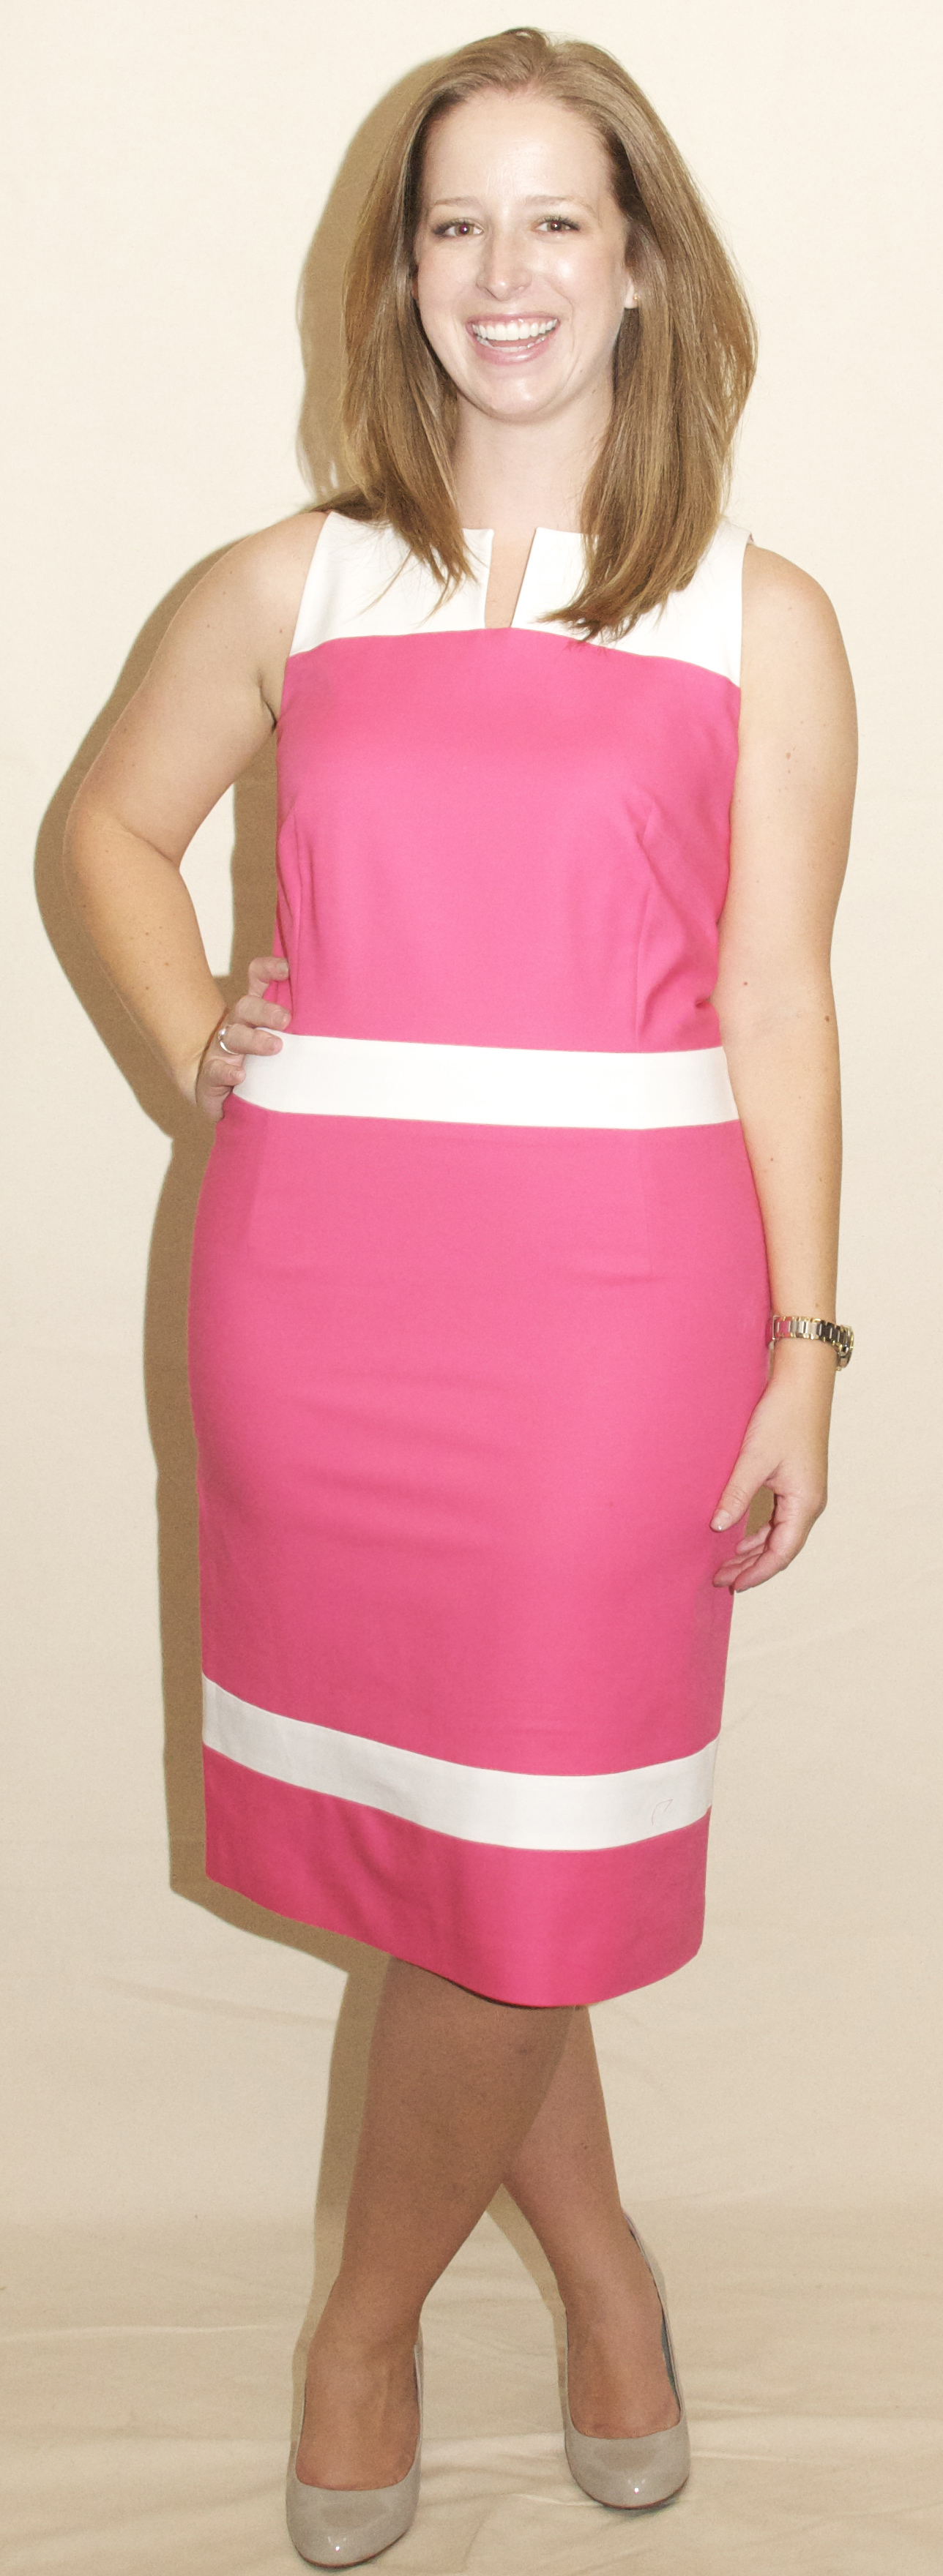 LD902M - Ladies Color Block Dress With Exposed Zipper